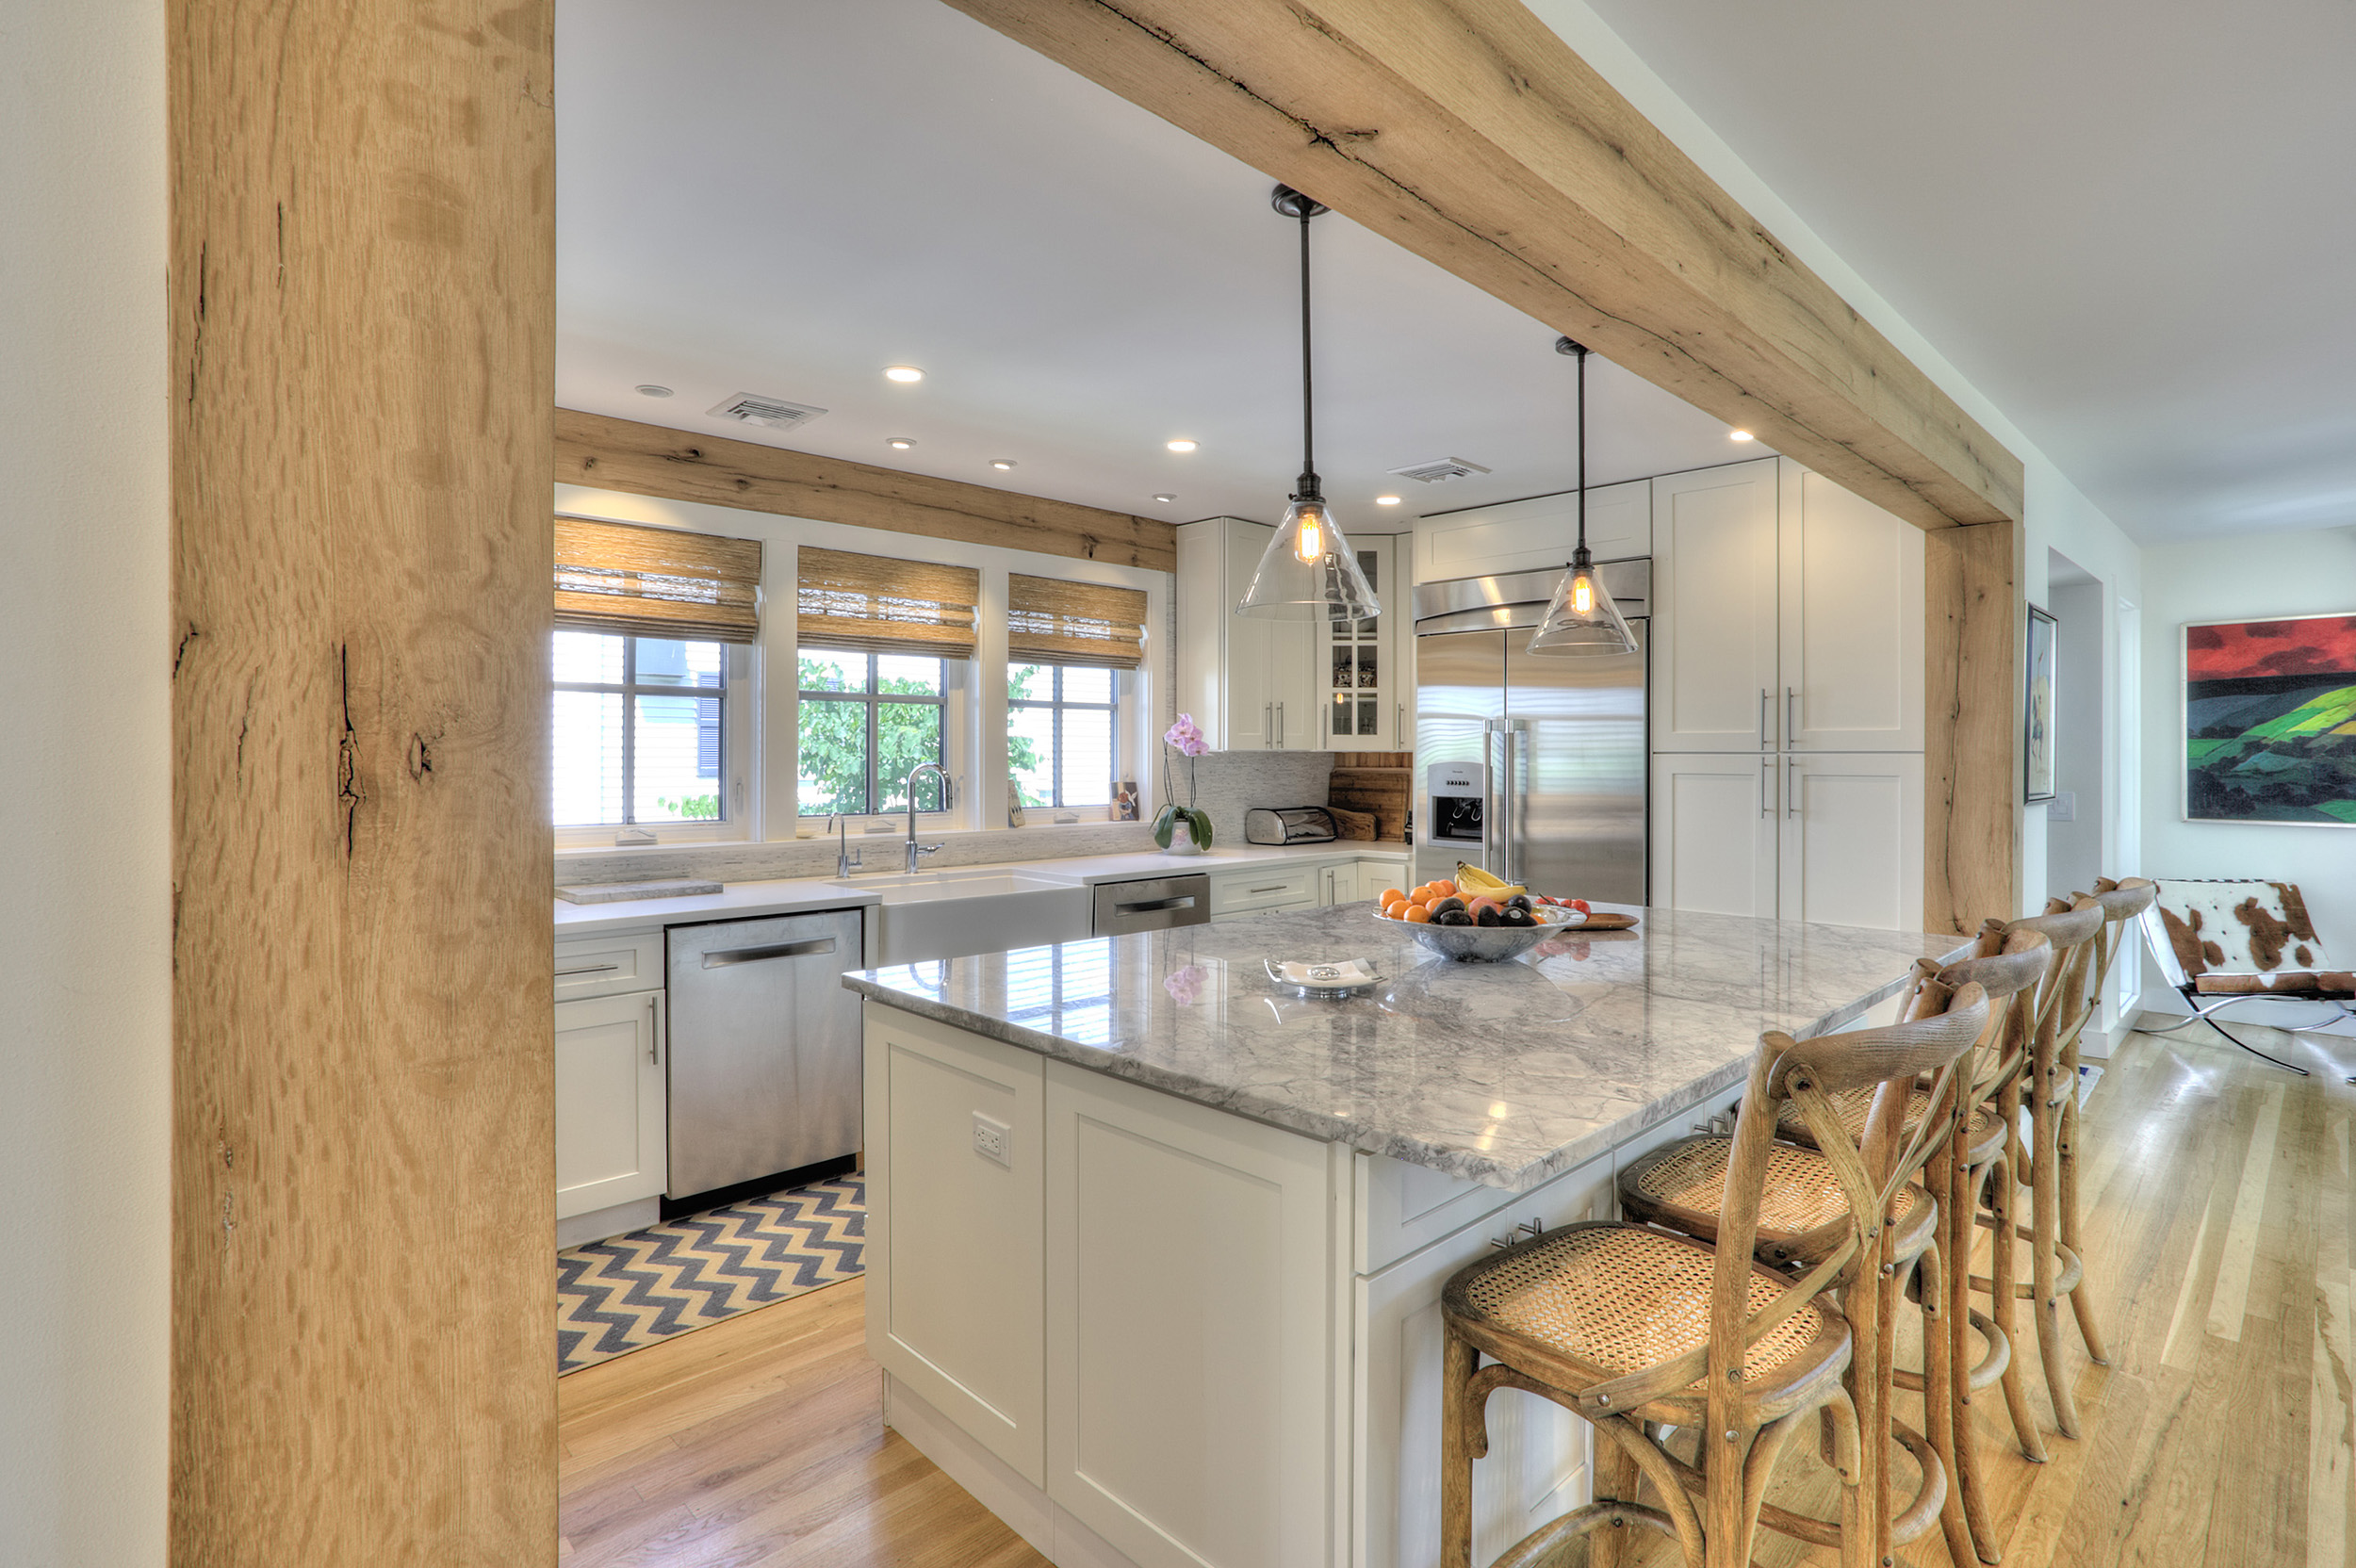 …we really like the house and are extremely pleased with the work that you & the Trillium Team did on it. There are so many decisions that you coached us on and for which we are pleased with the results.